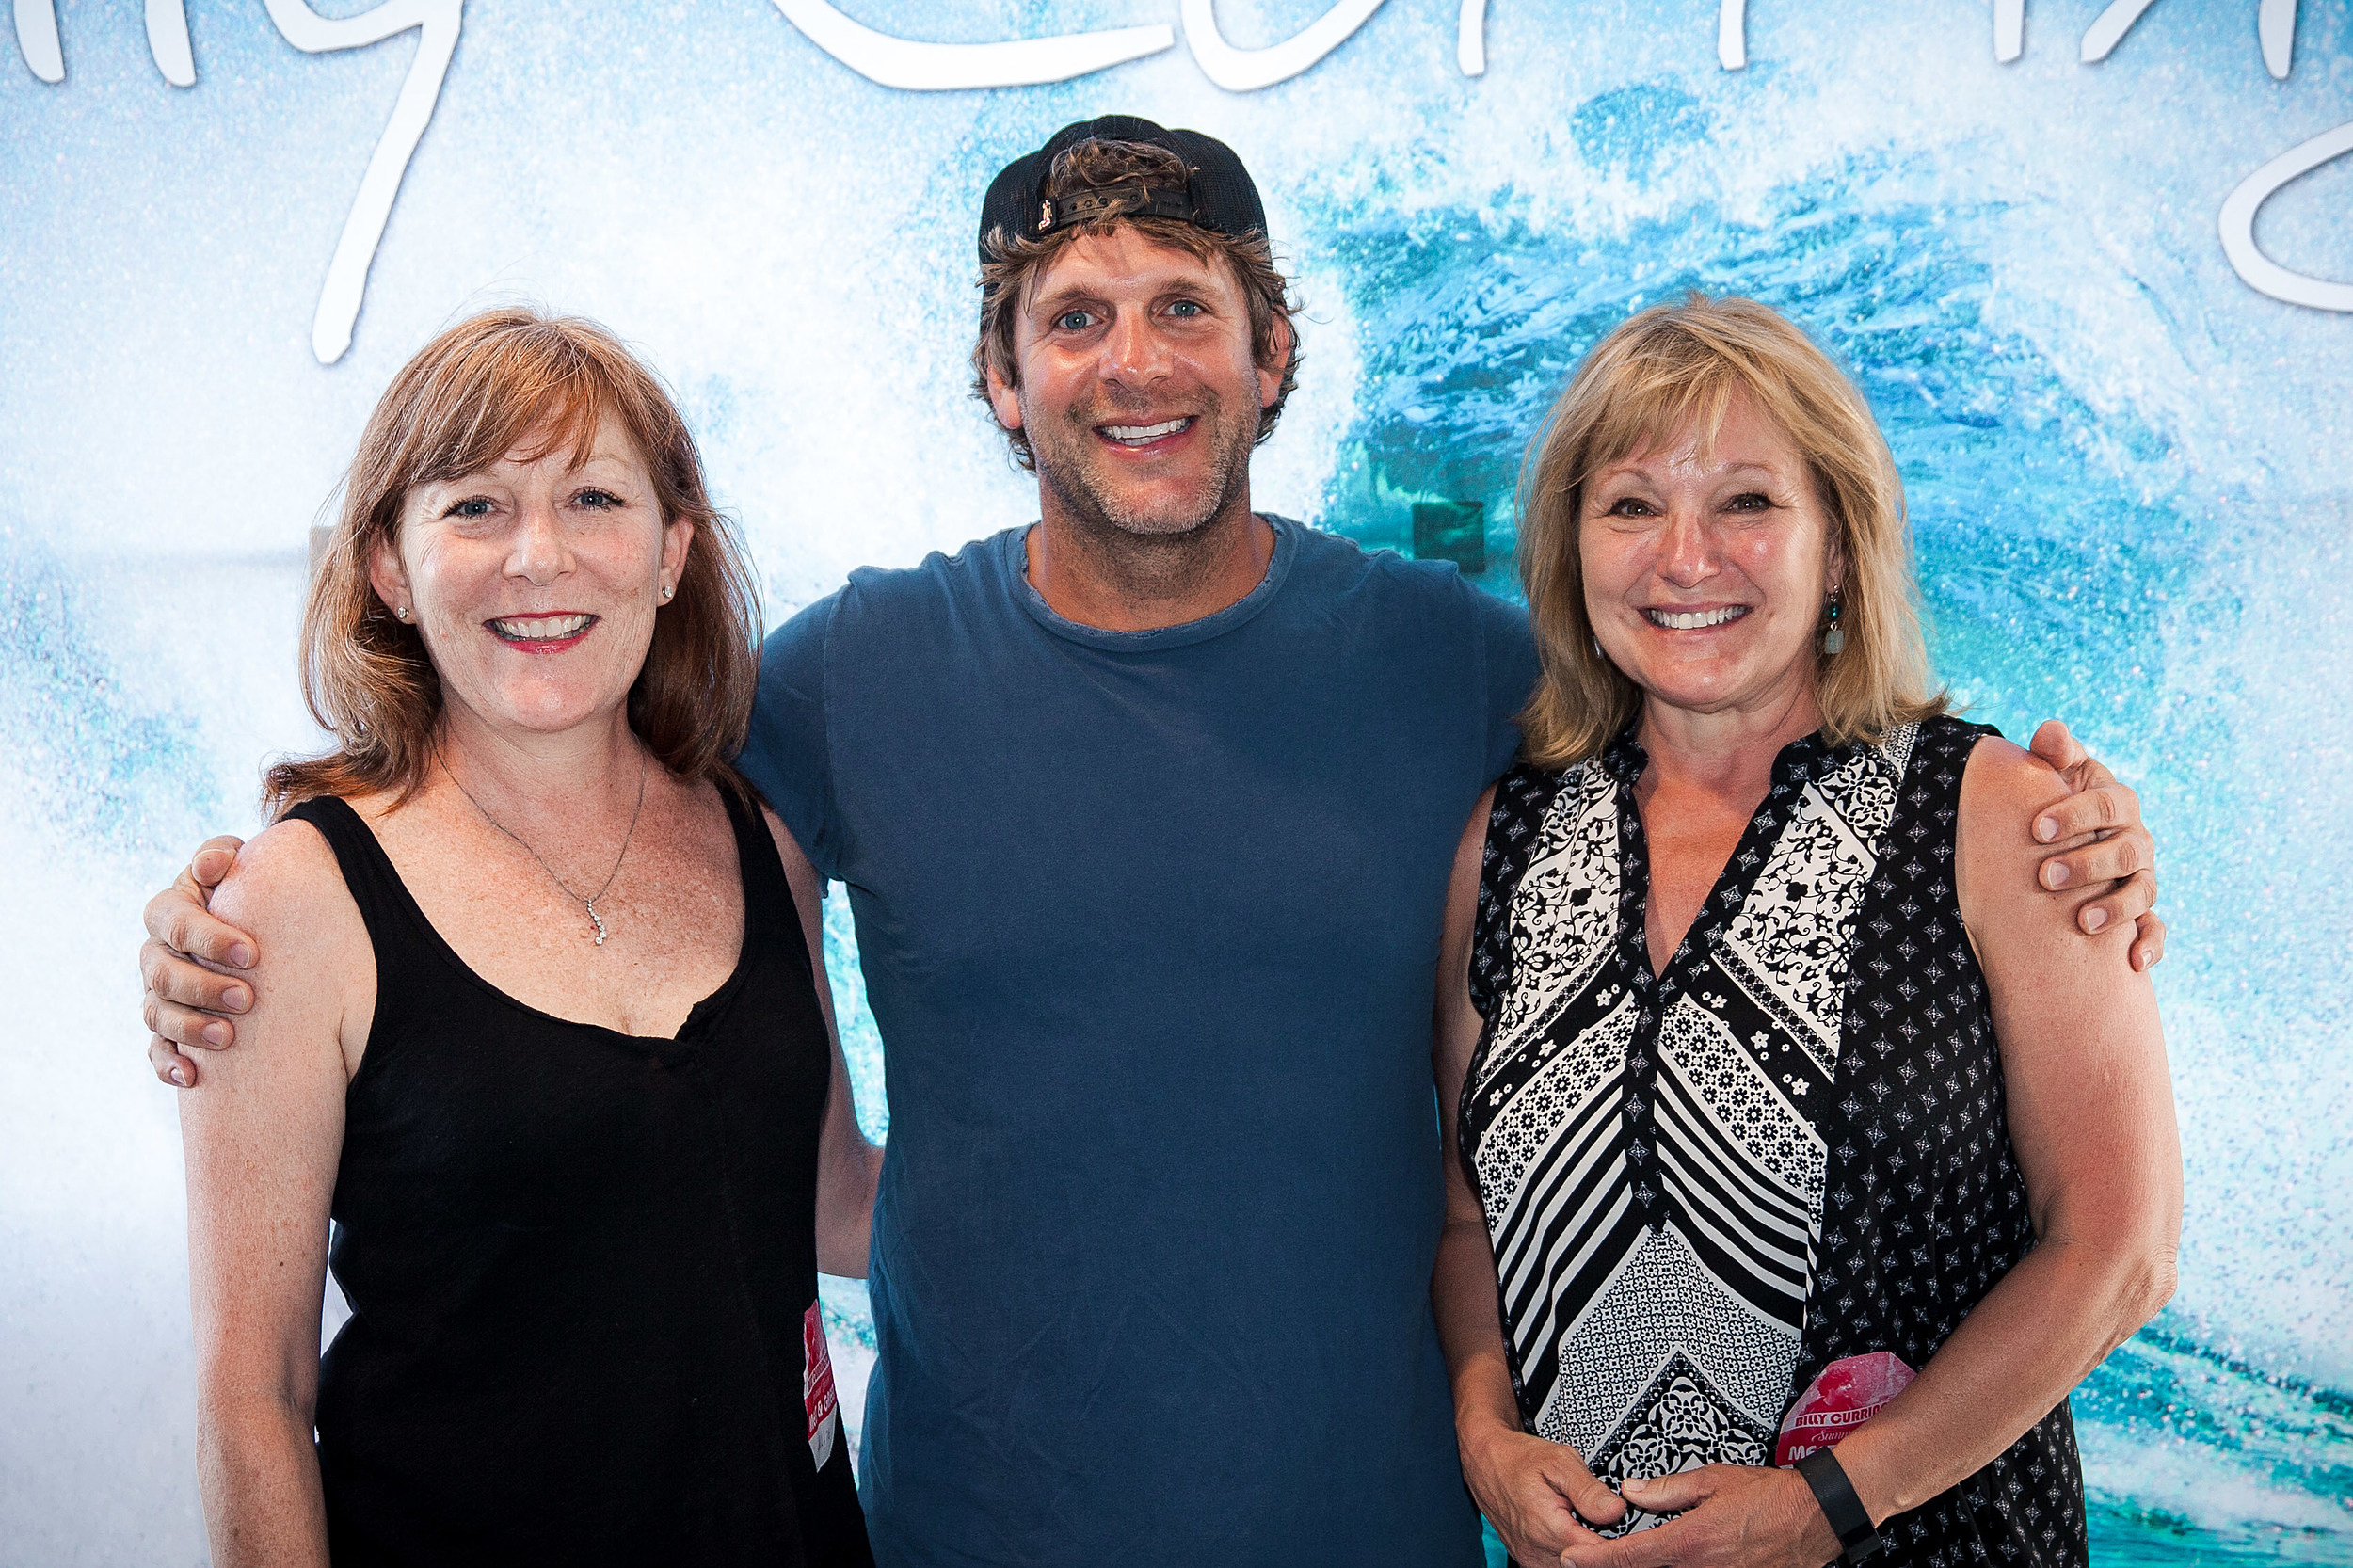 Billy currington witl meet greet photos from taste of country 2016 kristyandbryce Images